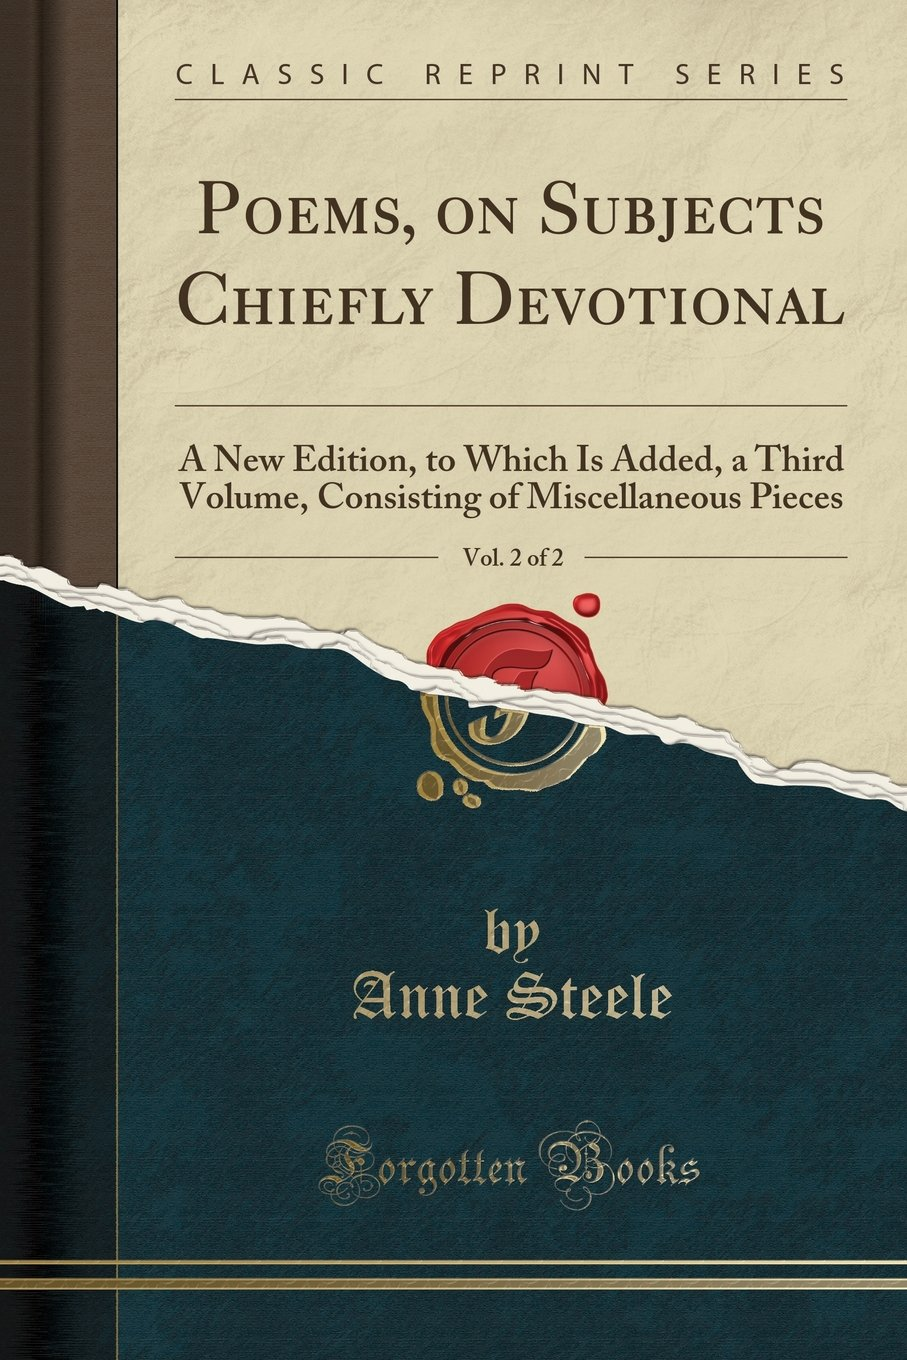 Poems, on Subjects Chiefly Devotional, Vol. 2 of 2: A New Edition, to Which Is Added, a Third Volume, Consisting of Miscellaneous Pieces (Classic Reprint)